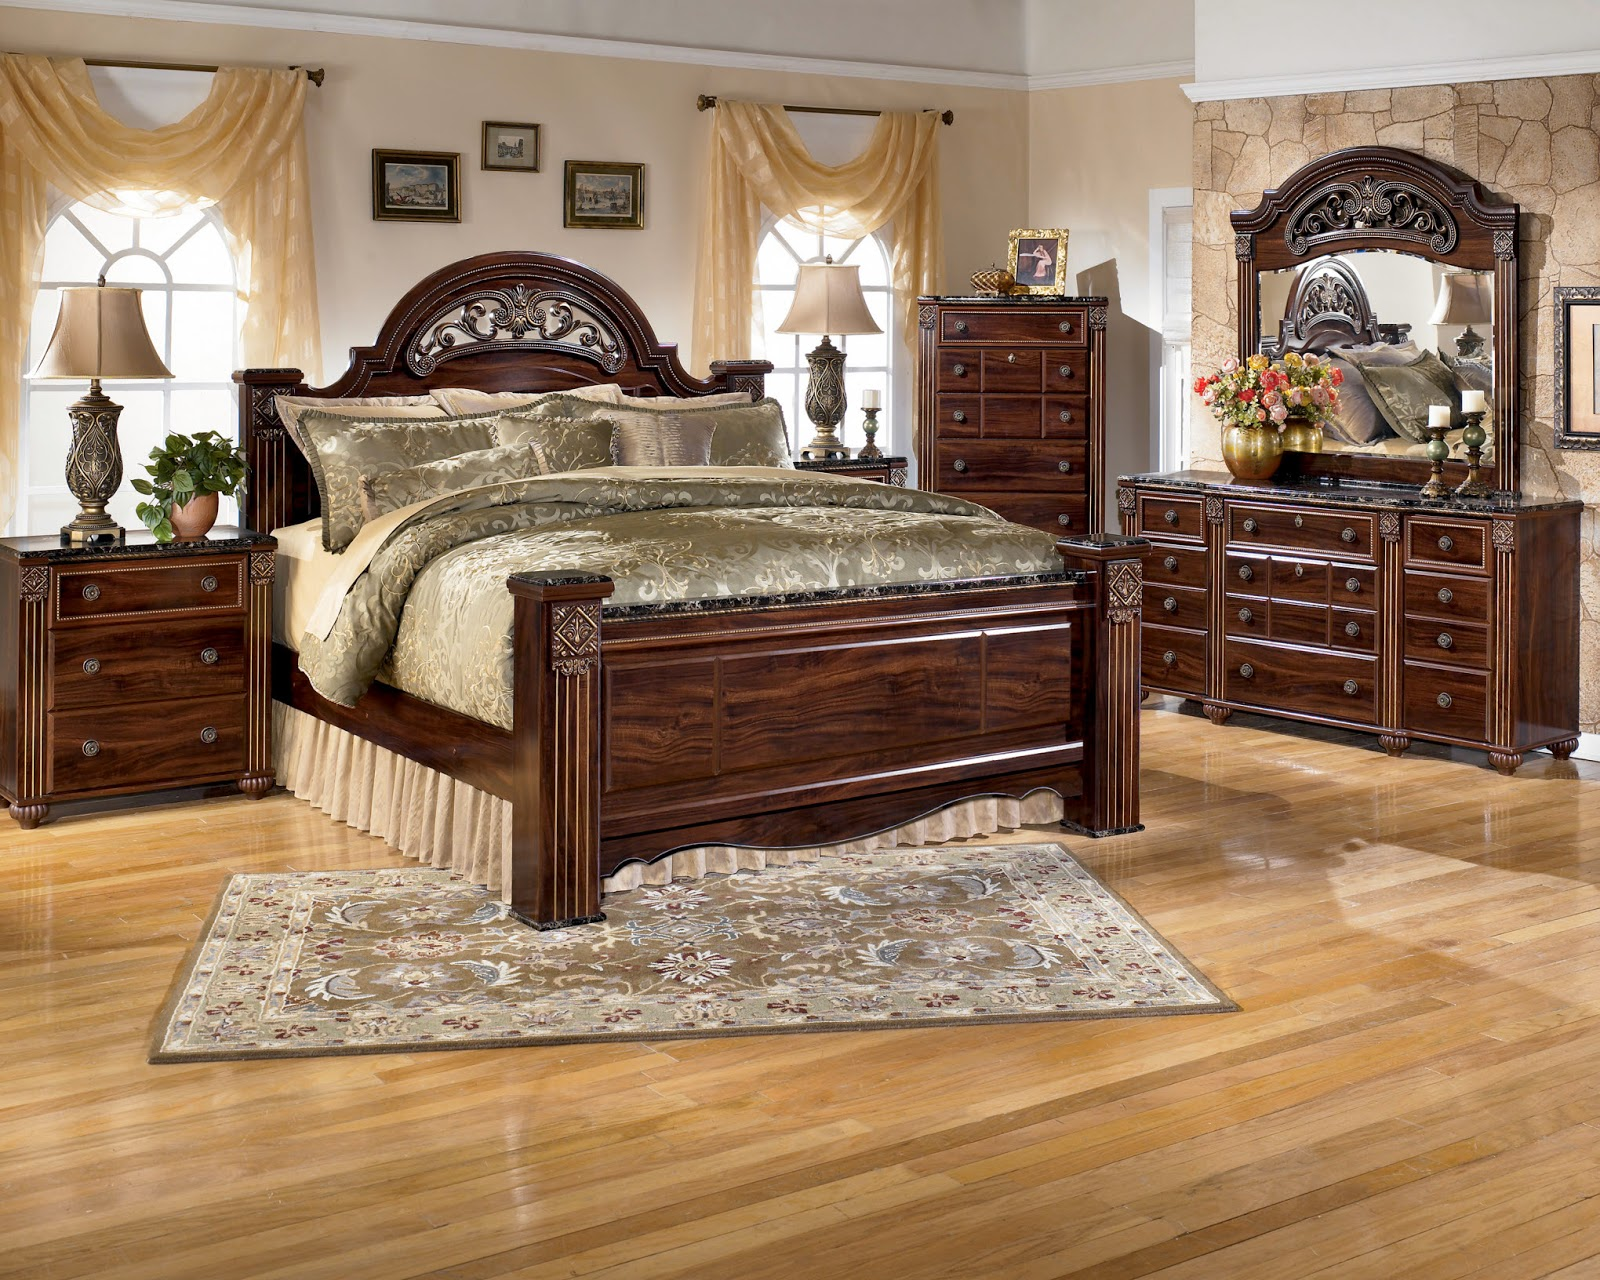 Ashley furniture bedroom sets on sale popular interior for 3 bedroom set